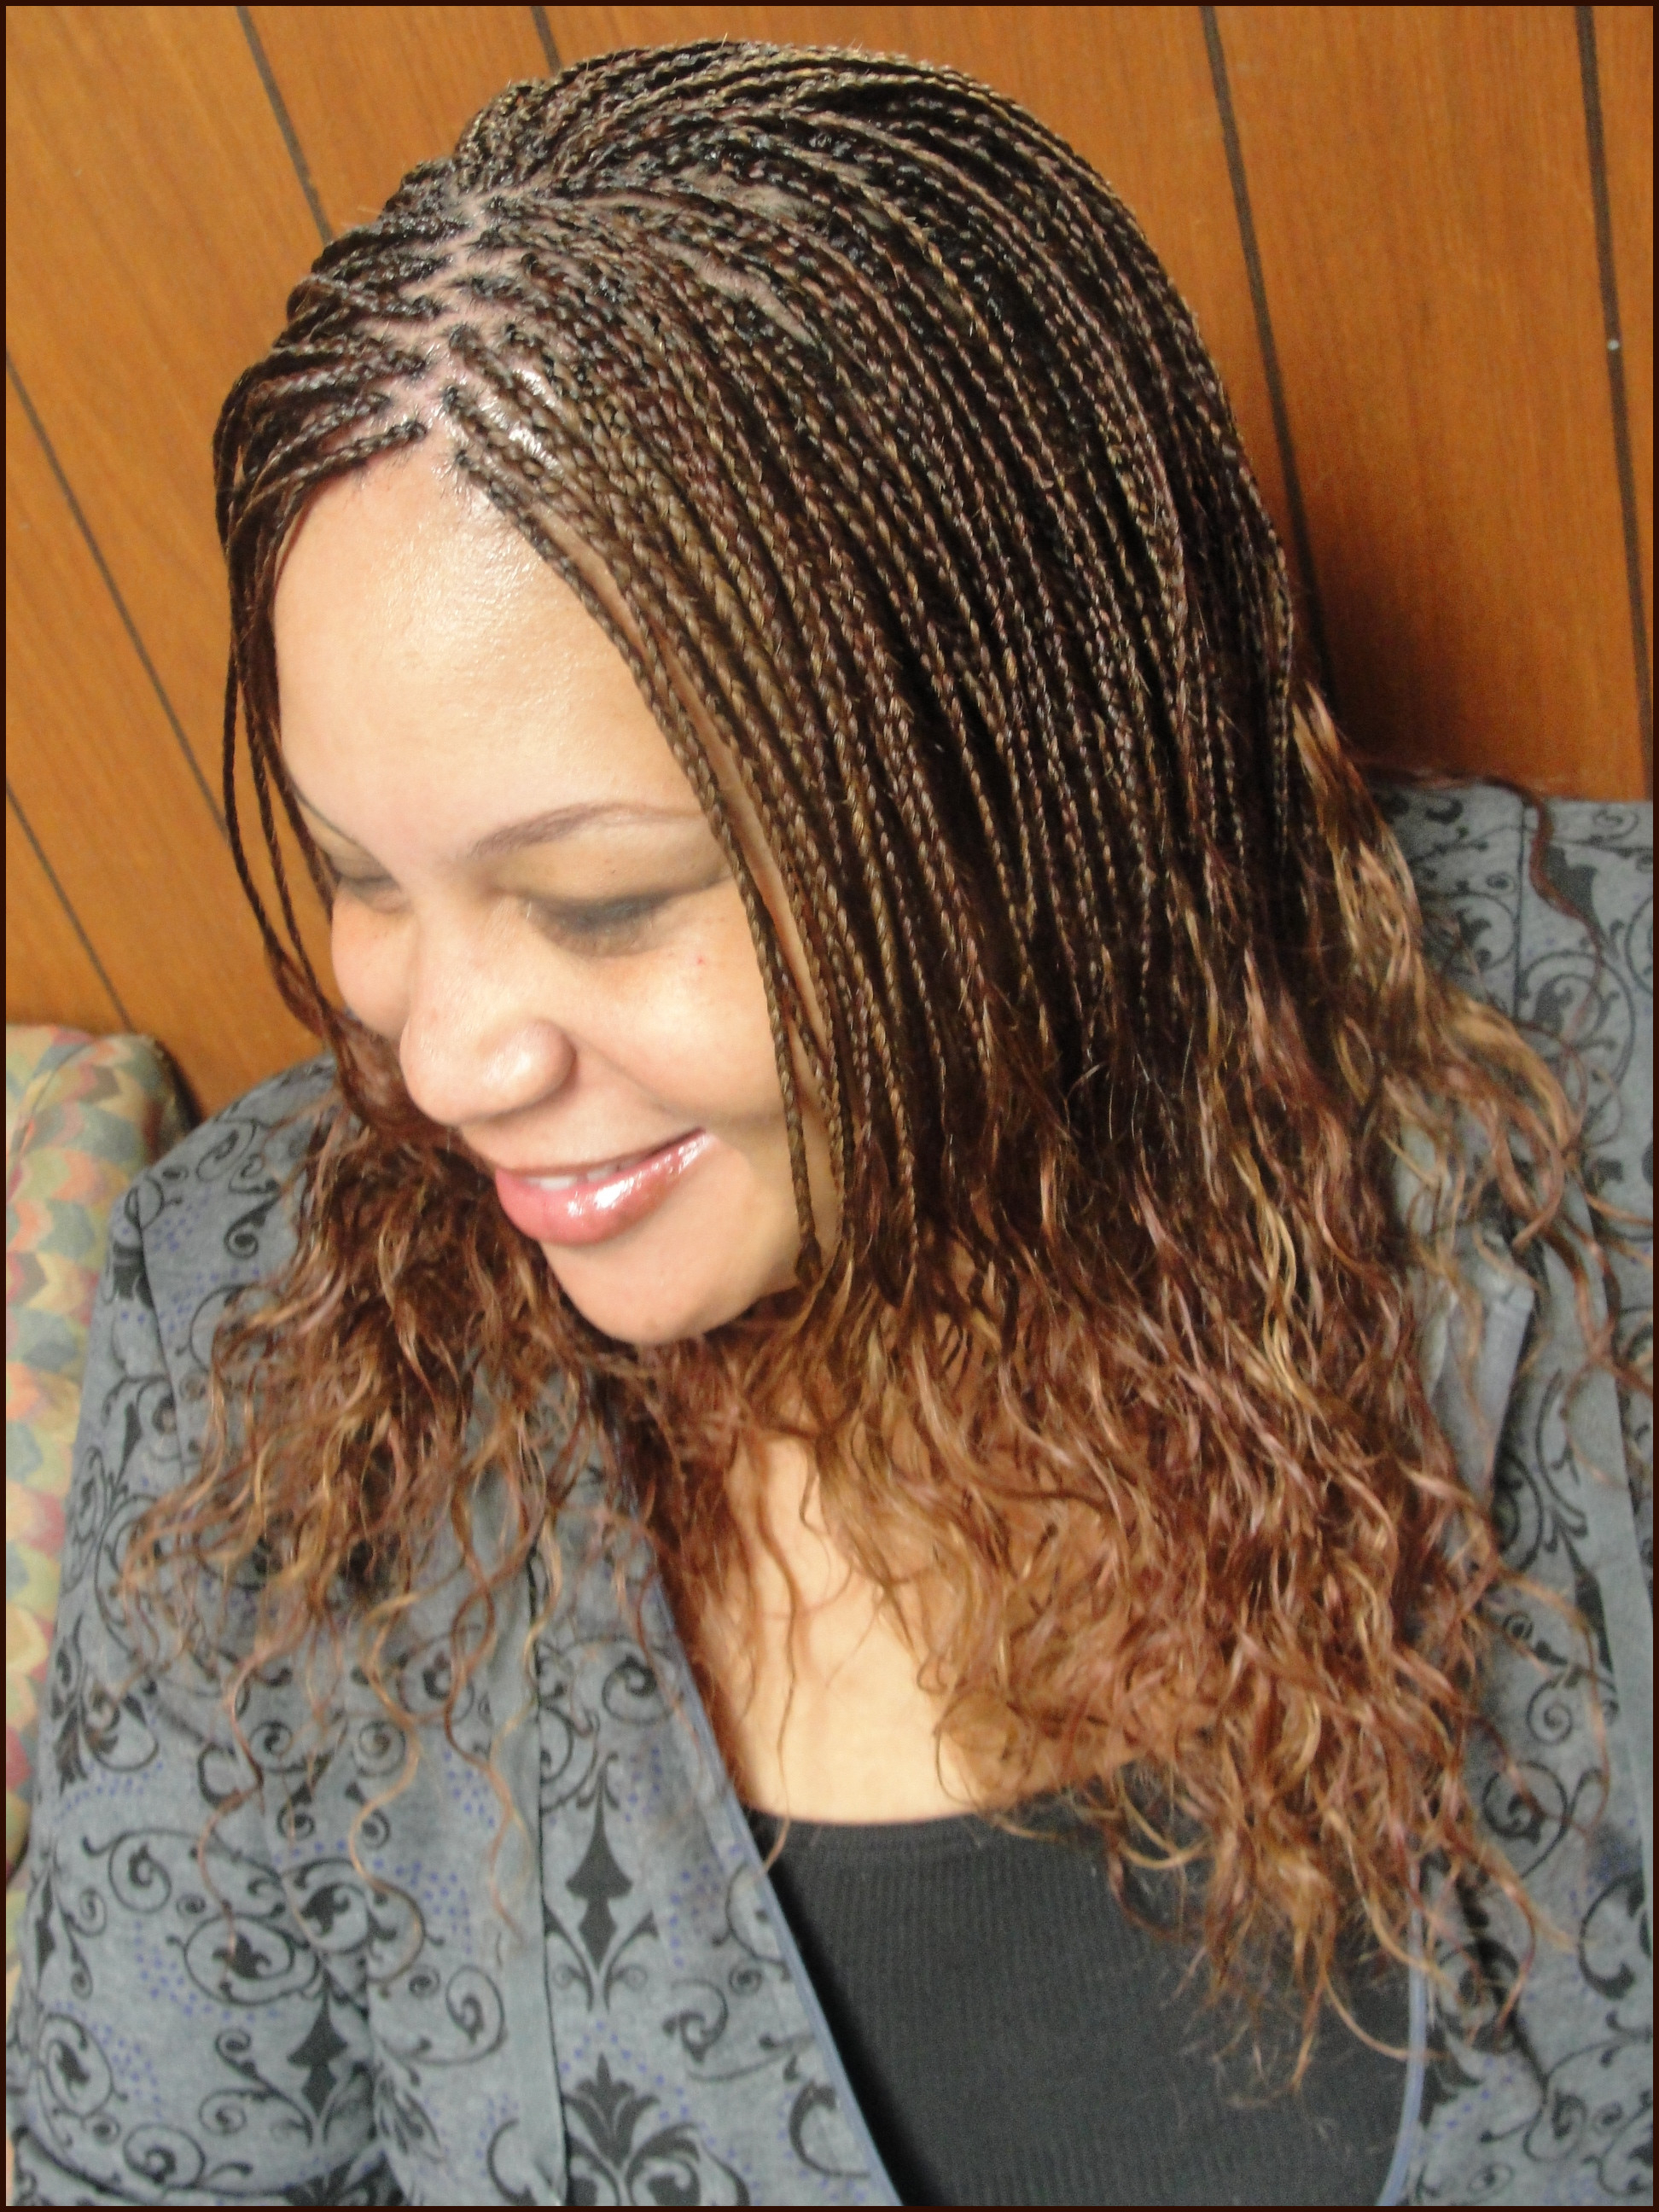 Micro Braids Hairstyles Wavy 439487 Micro Braids Hairstyles Within Widely Used Wet And Wavy Micro Braid Hairstyles (View 17 of 20)